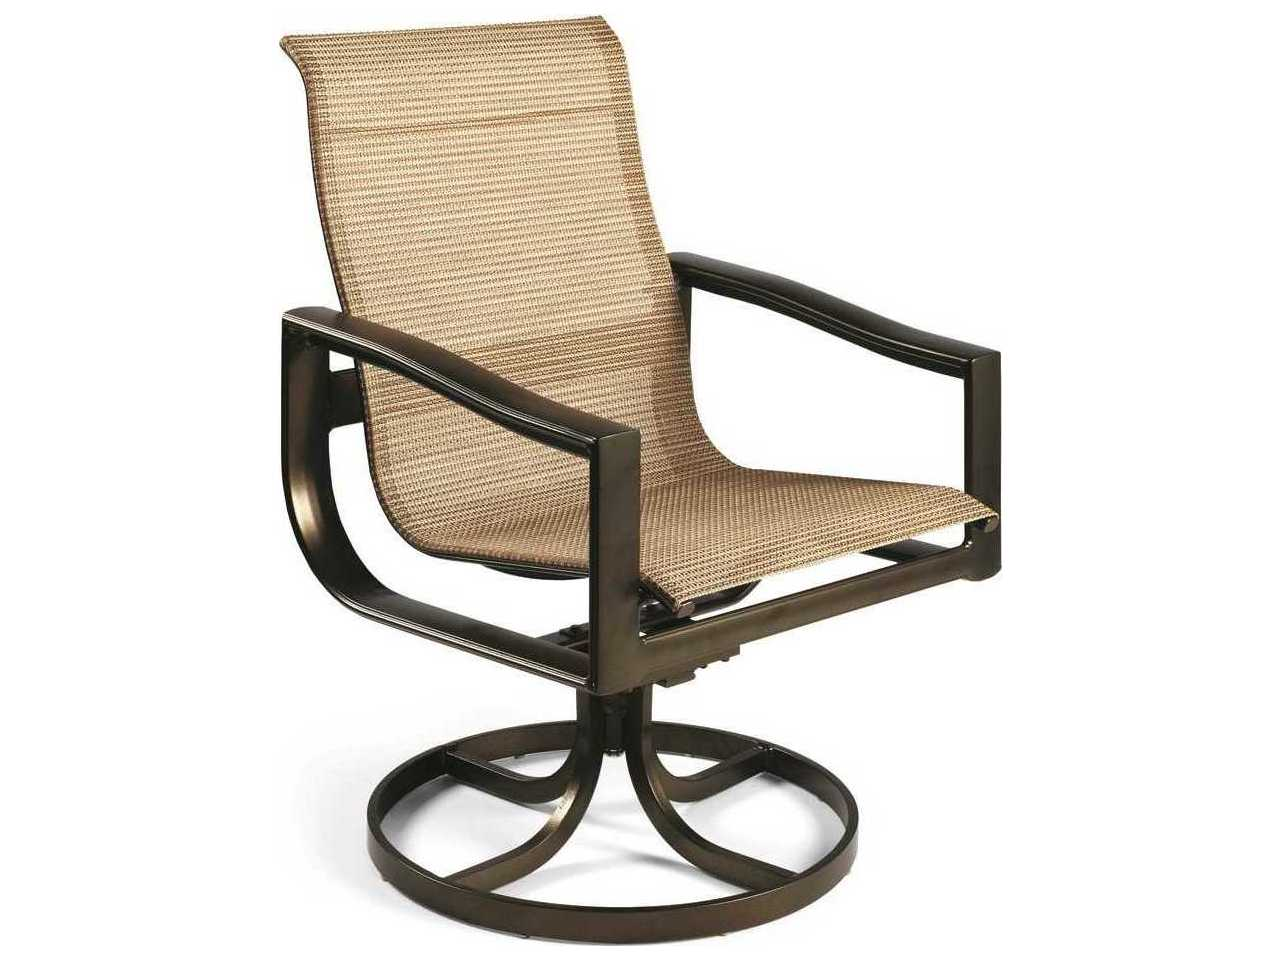 Incredible Chair Tilt Chairs Chair Mats Accessories Chairs Lorell Evergreenethics Interior Chair Design Evergreenethicsorg